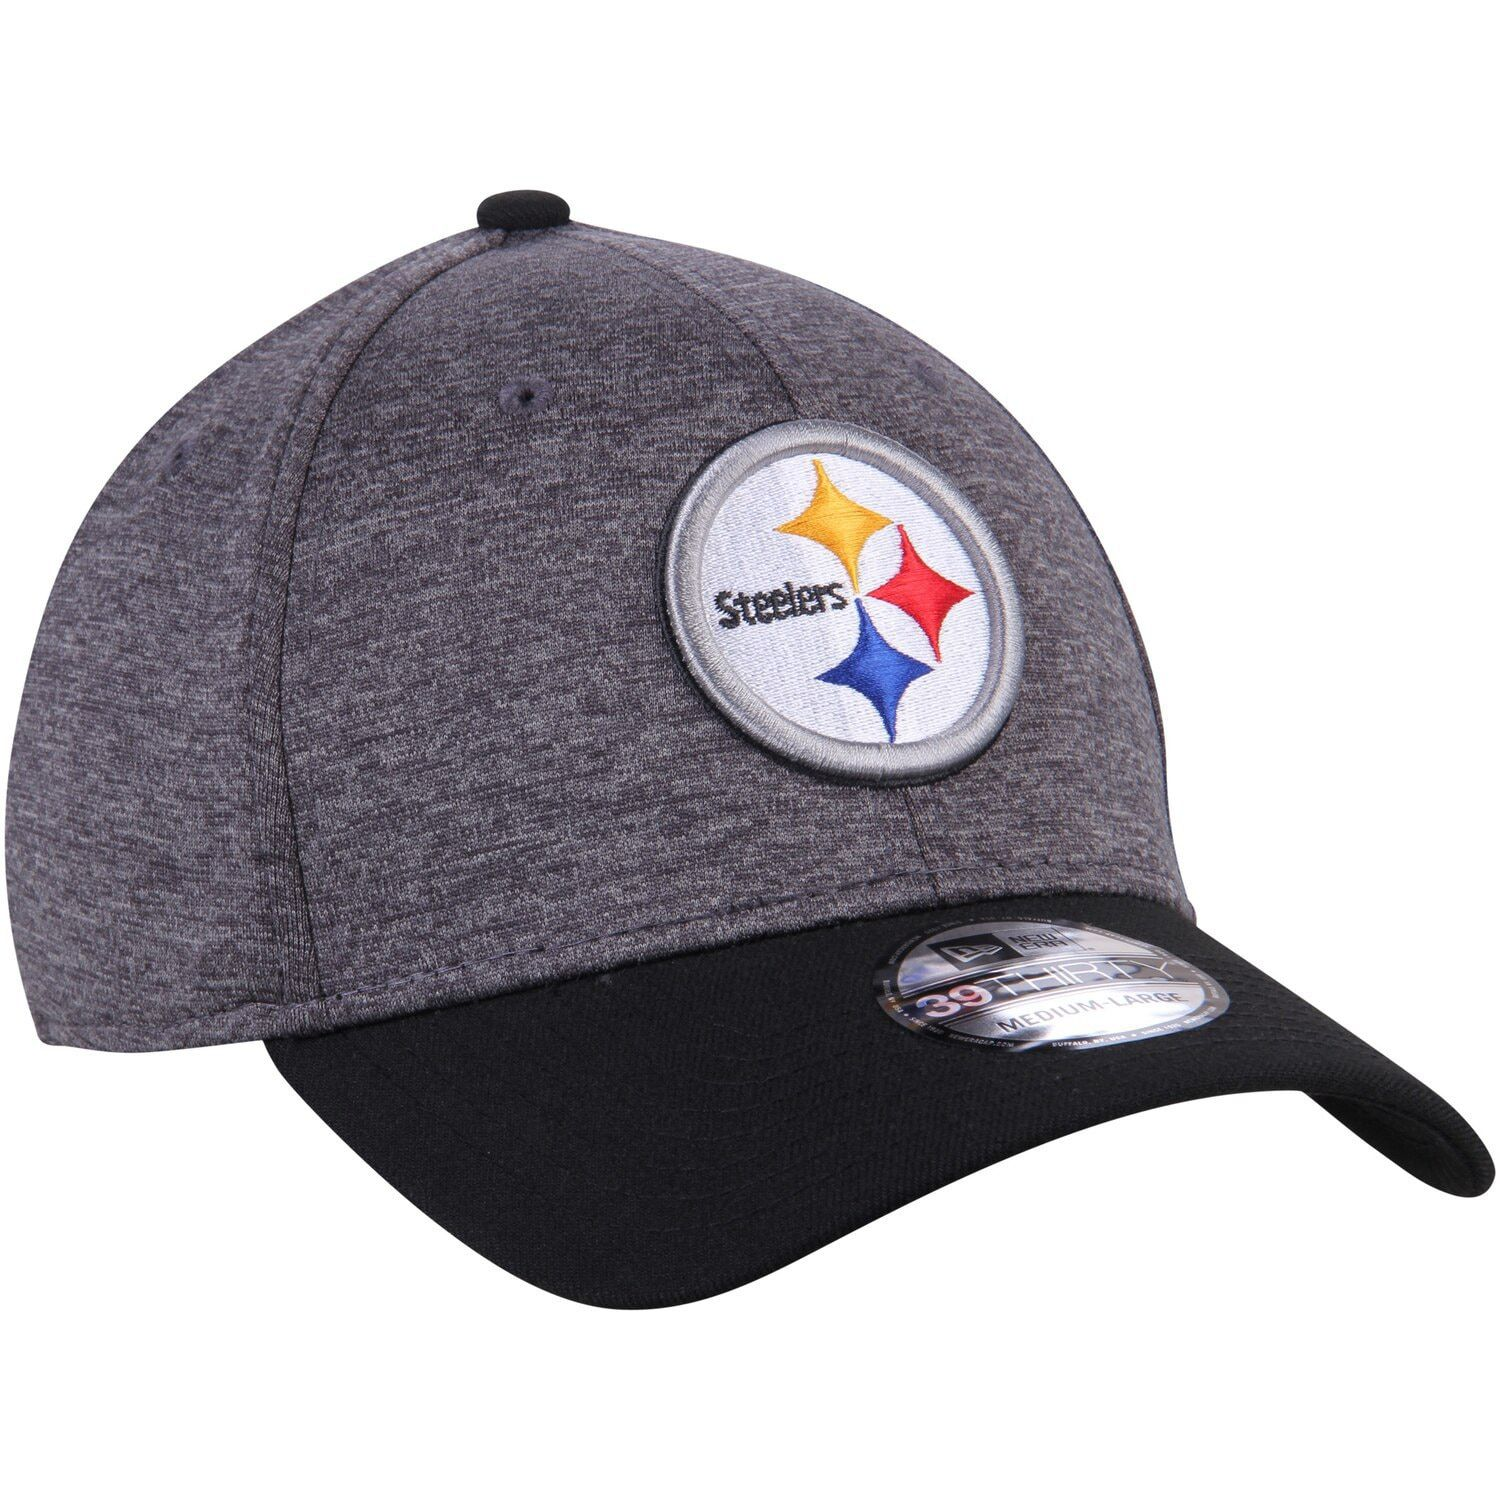 New Era 9Fifty Snapback Cap Shadow TECH Pittsburgh Steelers